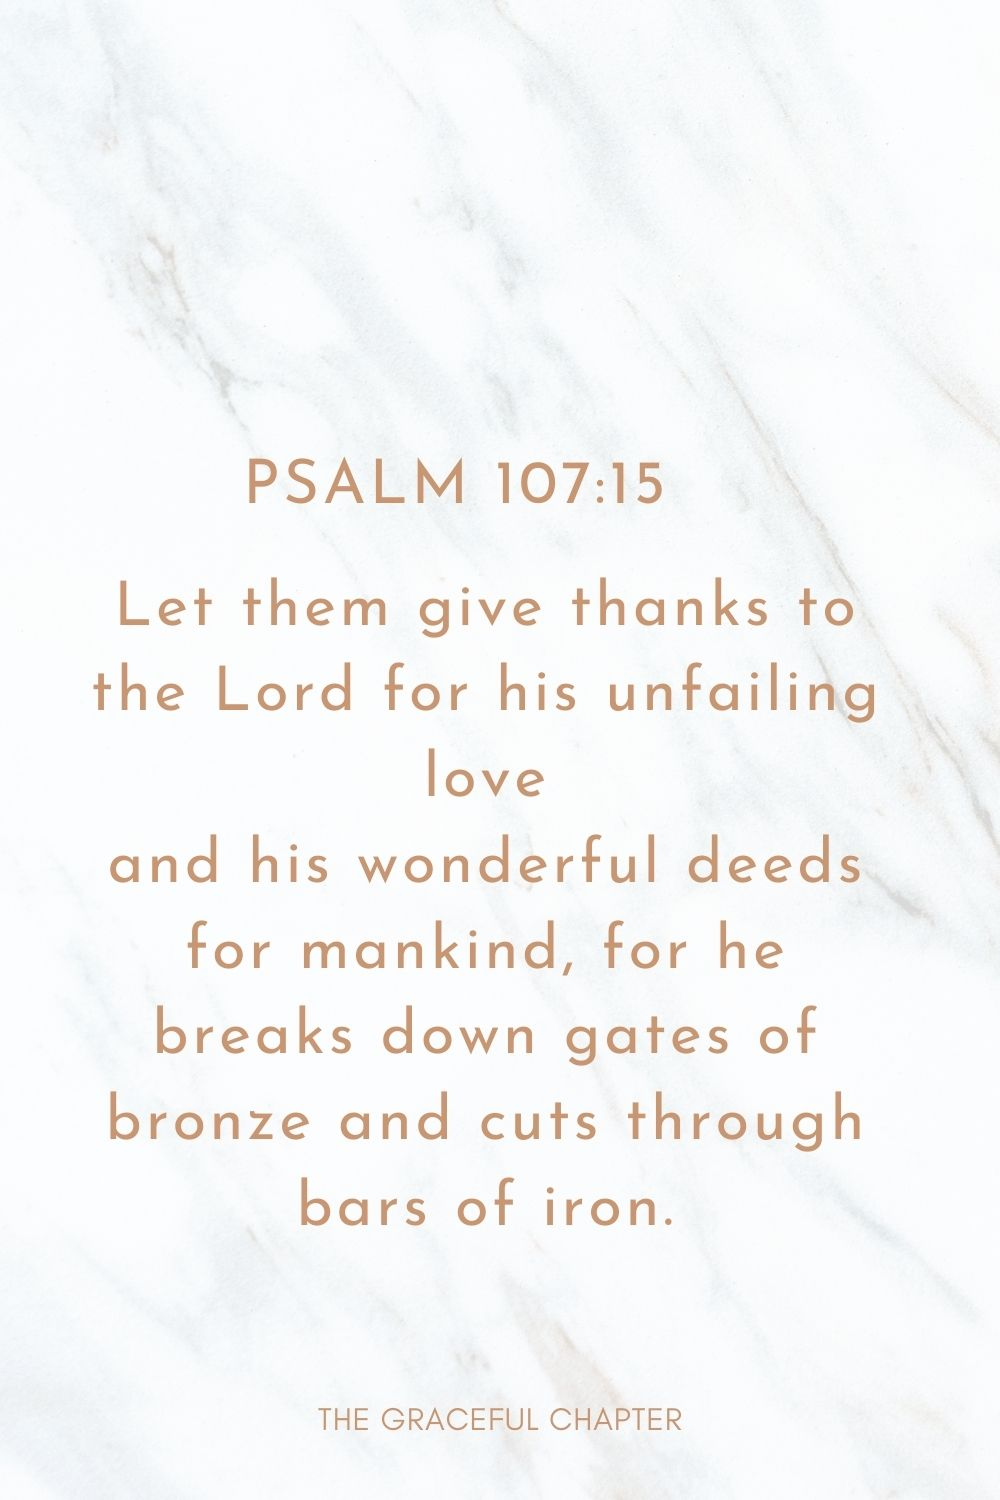 Let them give thanks to the Lord for his unfailing love and his wonderful deeds for mankind, for he breaks down gates of bronze and cuts through bars of iron. Psalm 107:15